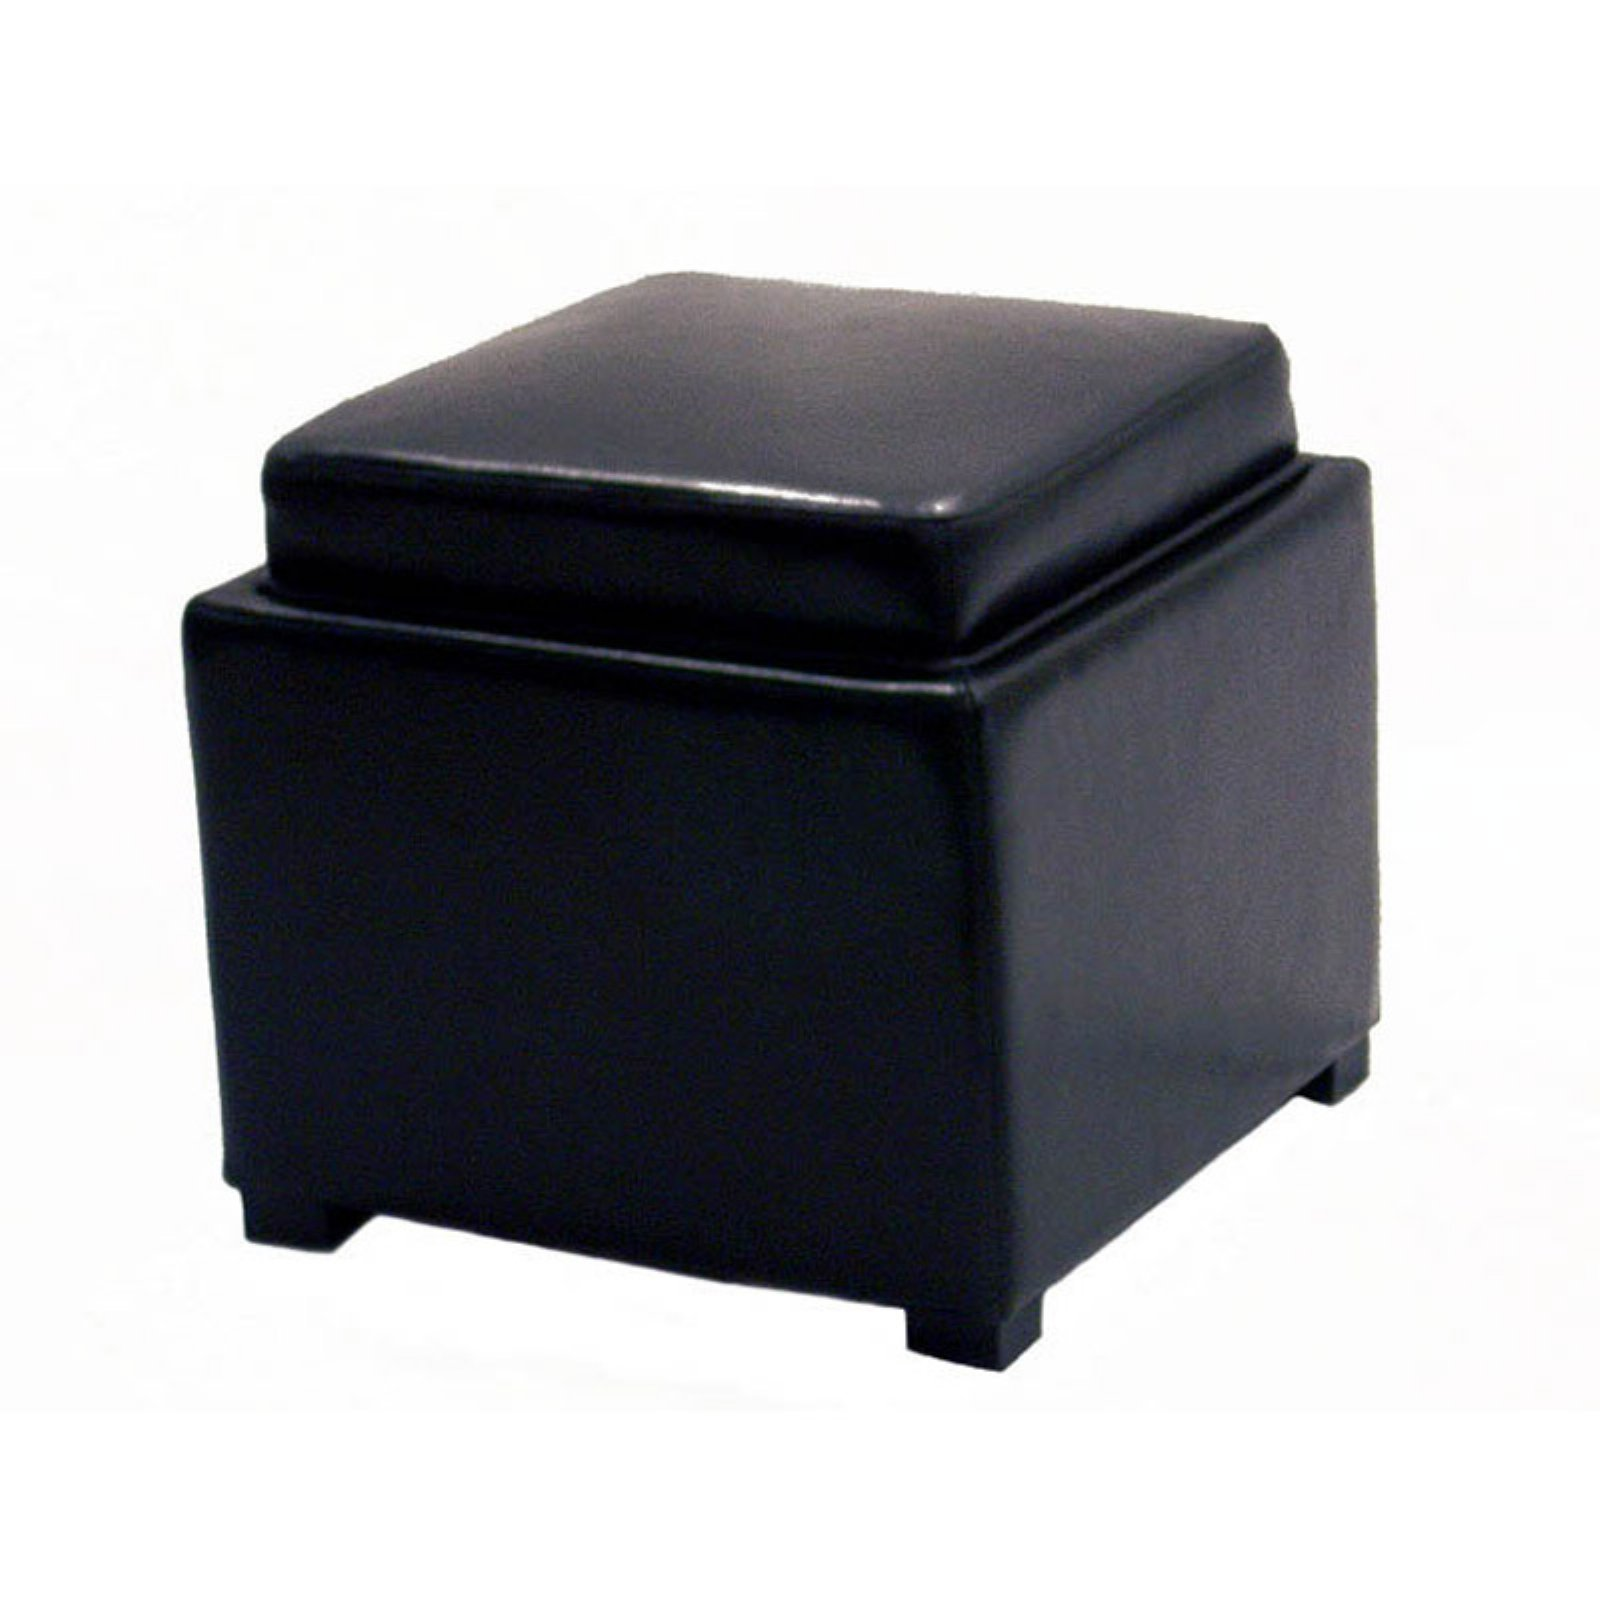 Ottoman With Tray And Storage